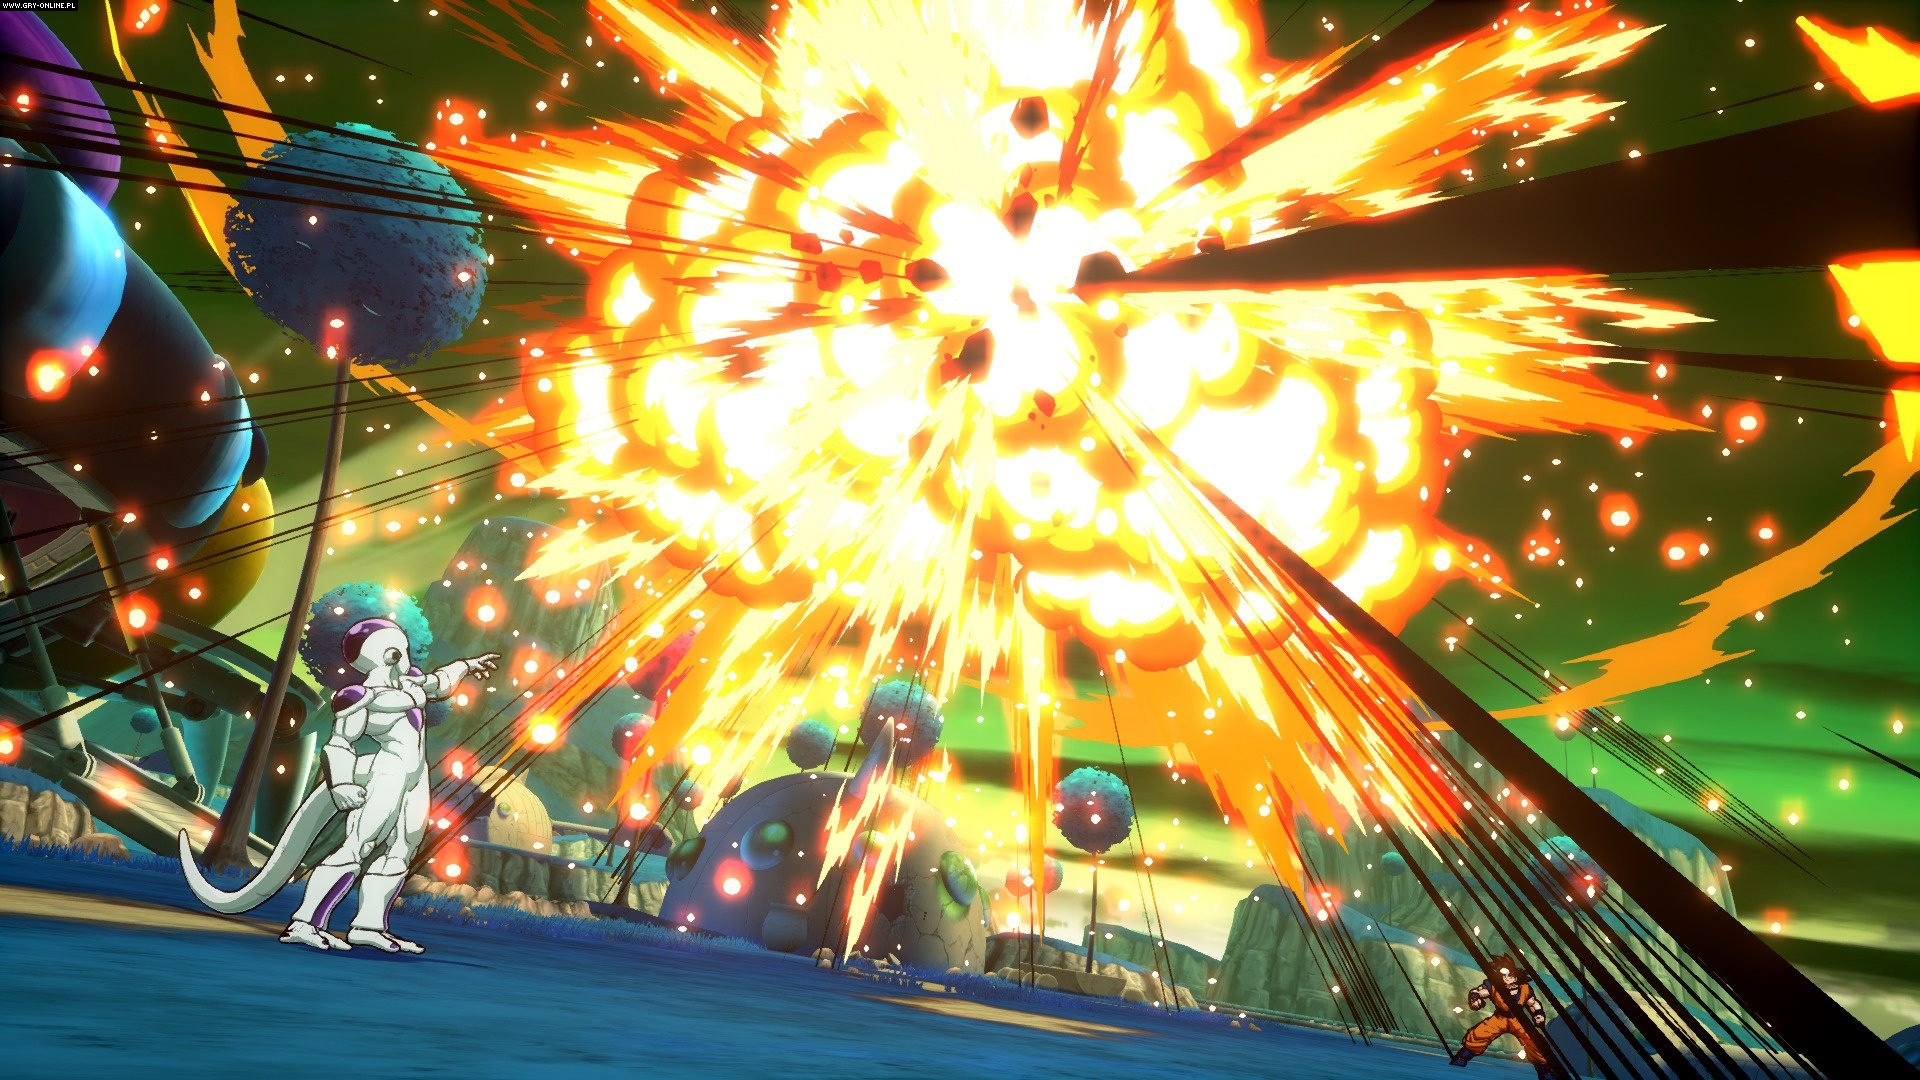 Dragon Ball FighterZ PC, PS4, XONE, Switch Gry Screen 121/230, Arc System Works, Bandai Namco Entertainment